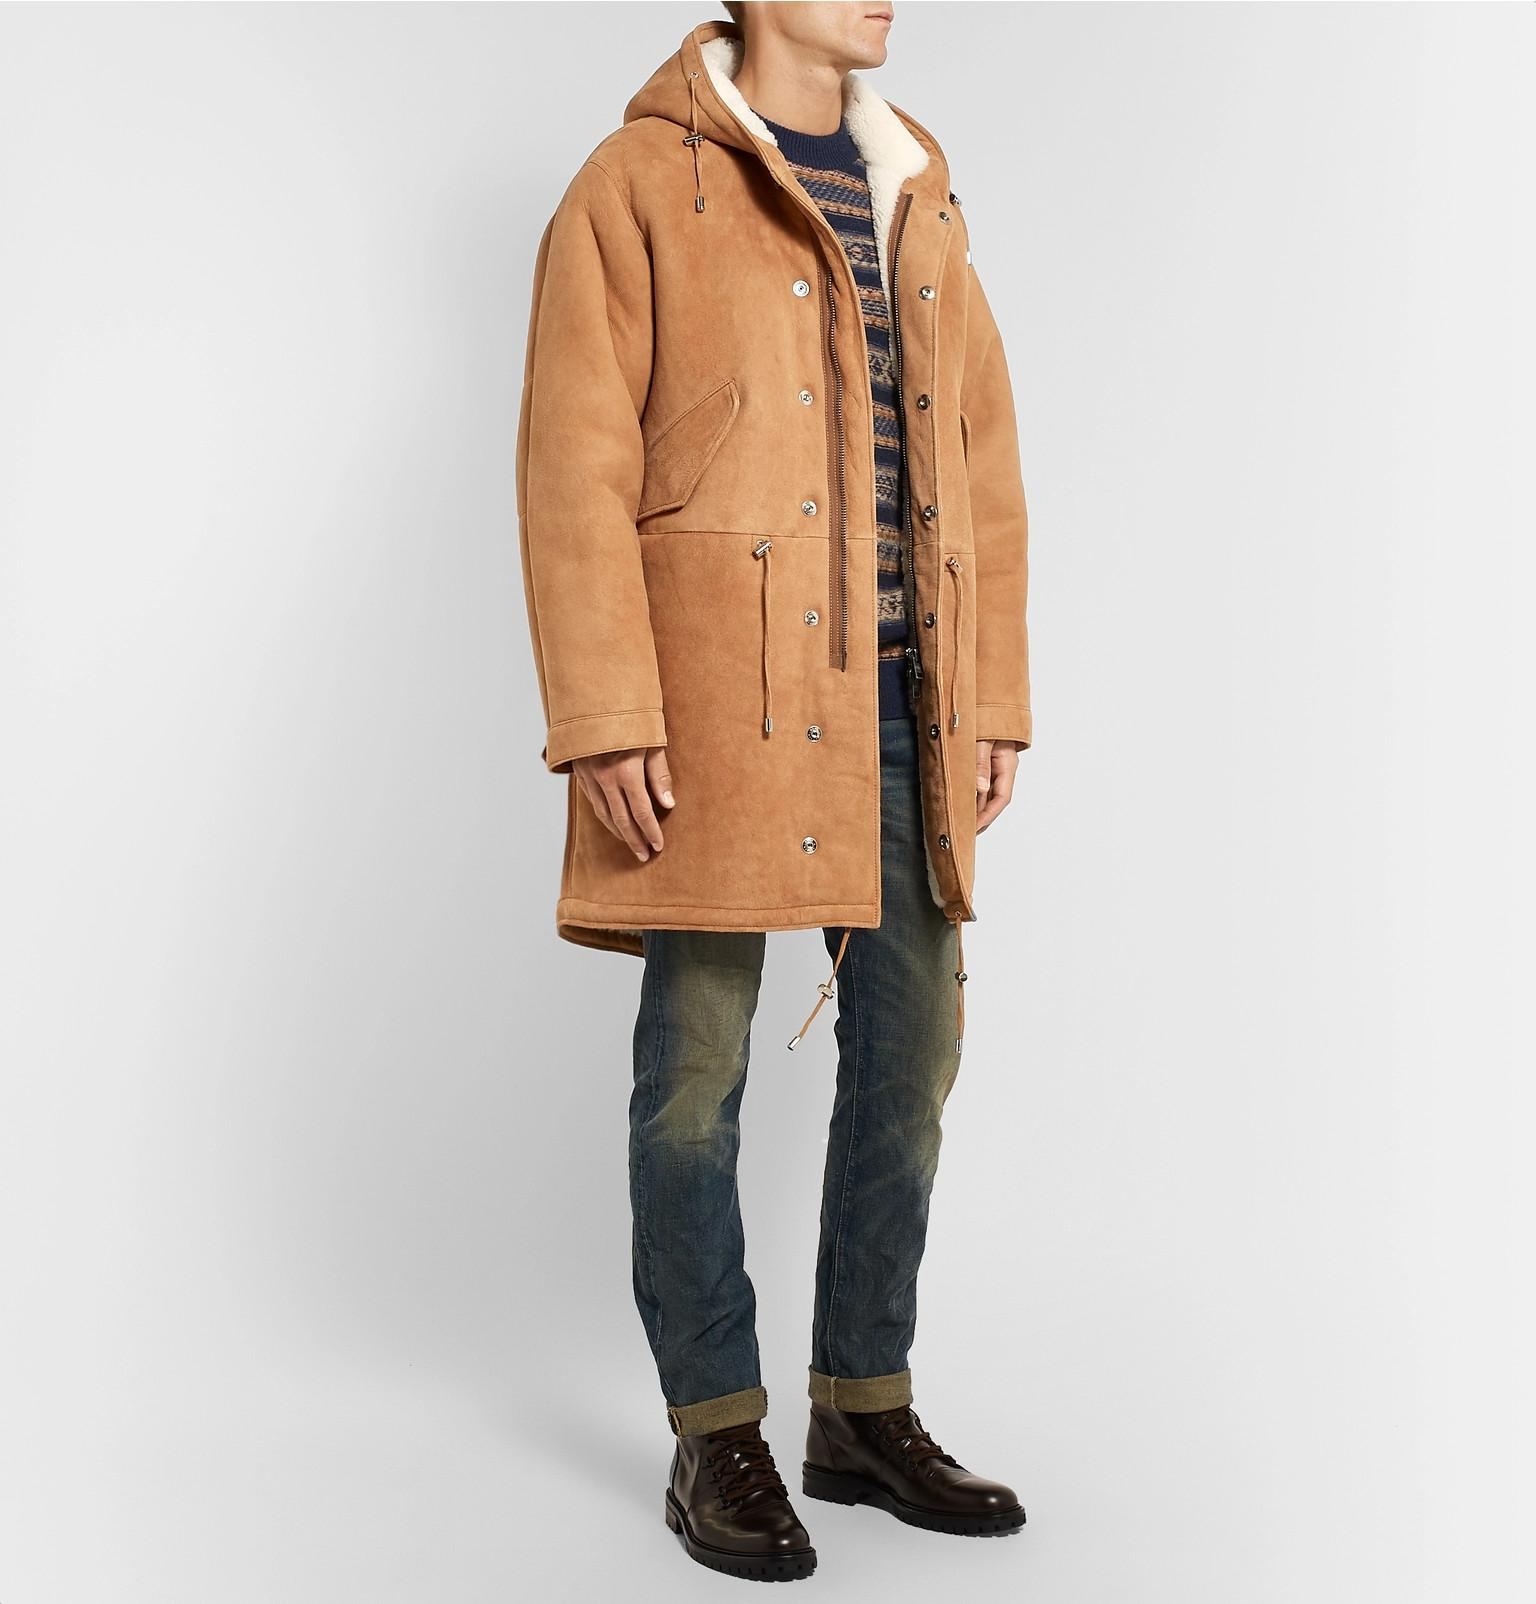 Men Multicolor Parka For Lyst Fullscreen View amp; Curwen Kent Shearling xEawHqEY